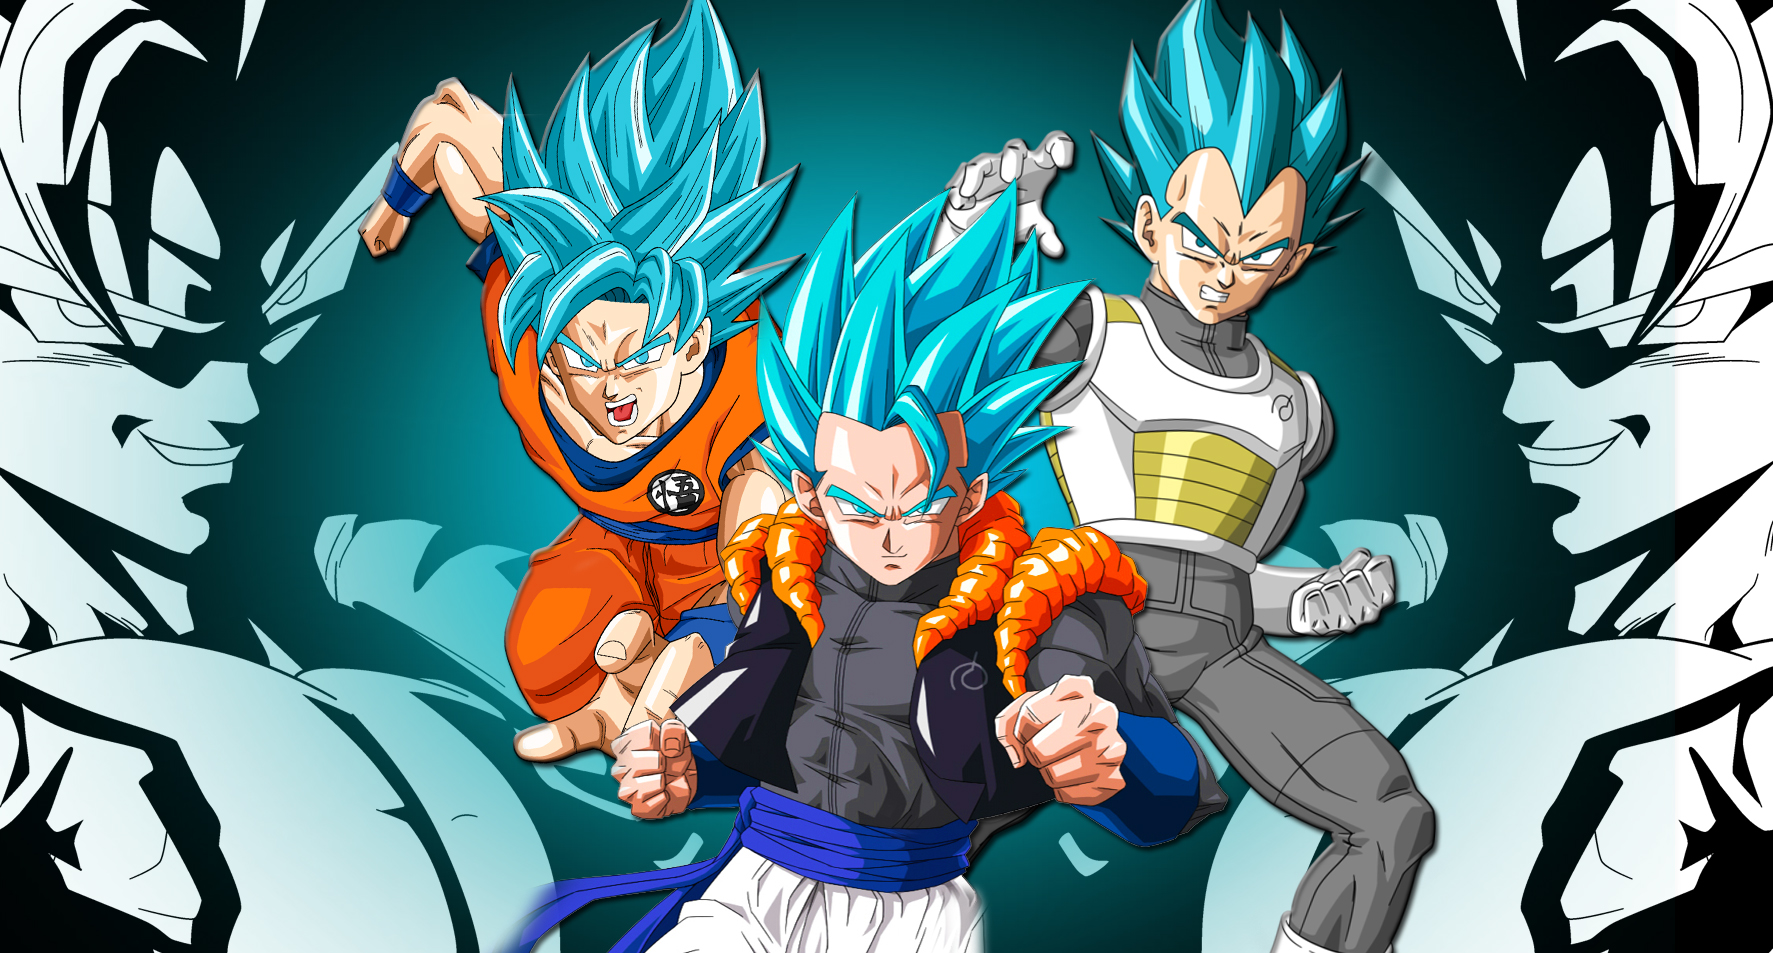 Gogeta primer imagen maxidbsuper fond d 39 cran and arri re for Fond ecran dbz